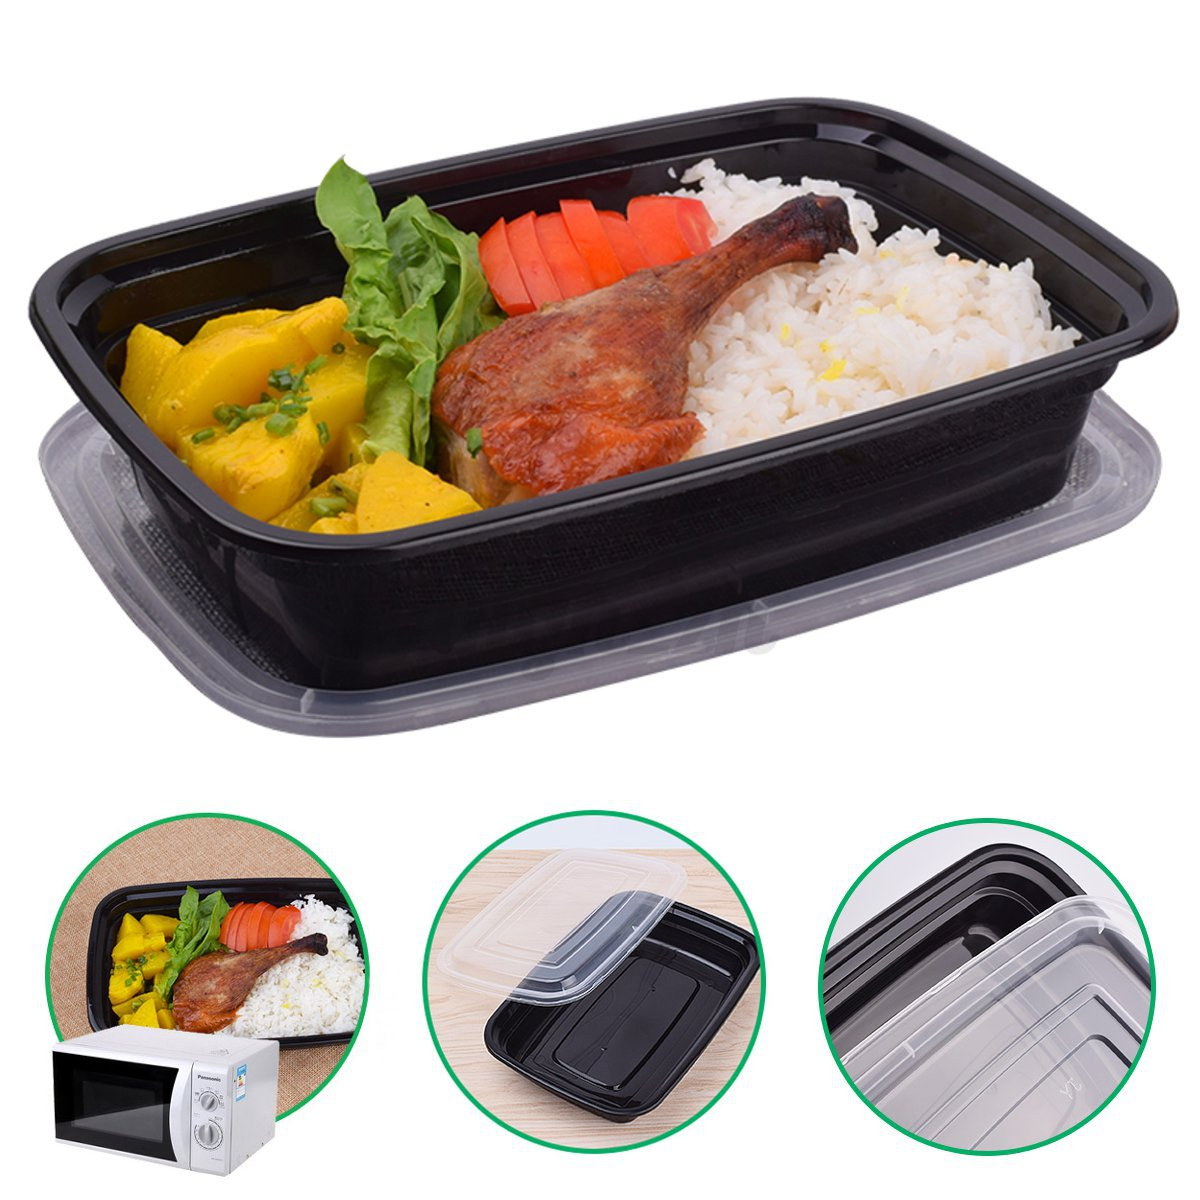 bo te d jeuner repas micro ondes lunch box bento pique nique 1 5 compartiments ebay. Black Bedroom Furniture Sets. Home Design Ideas